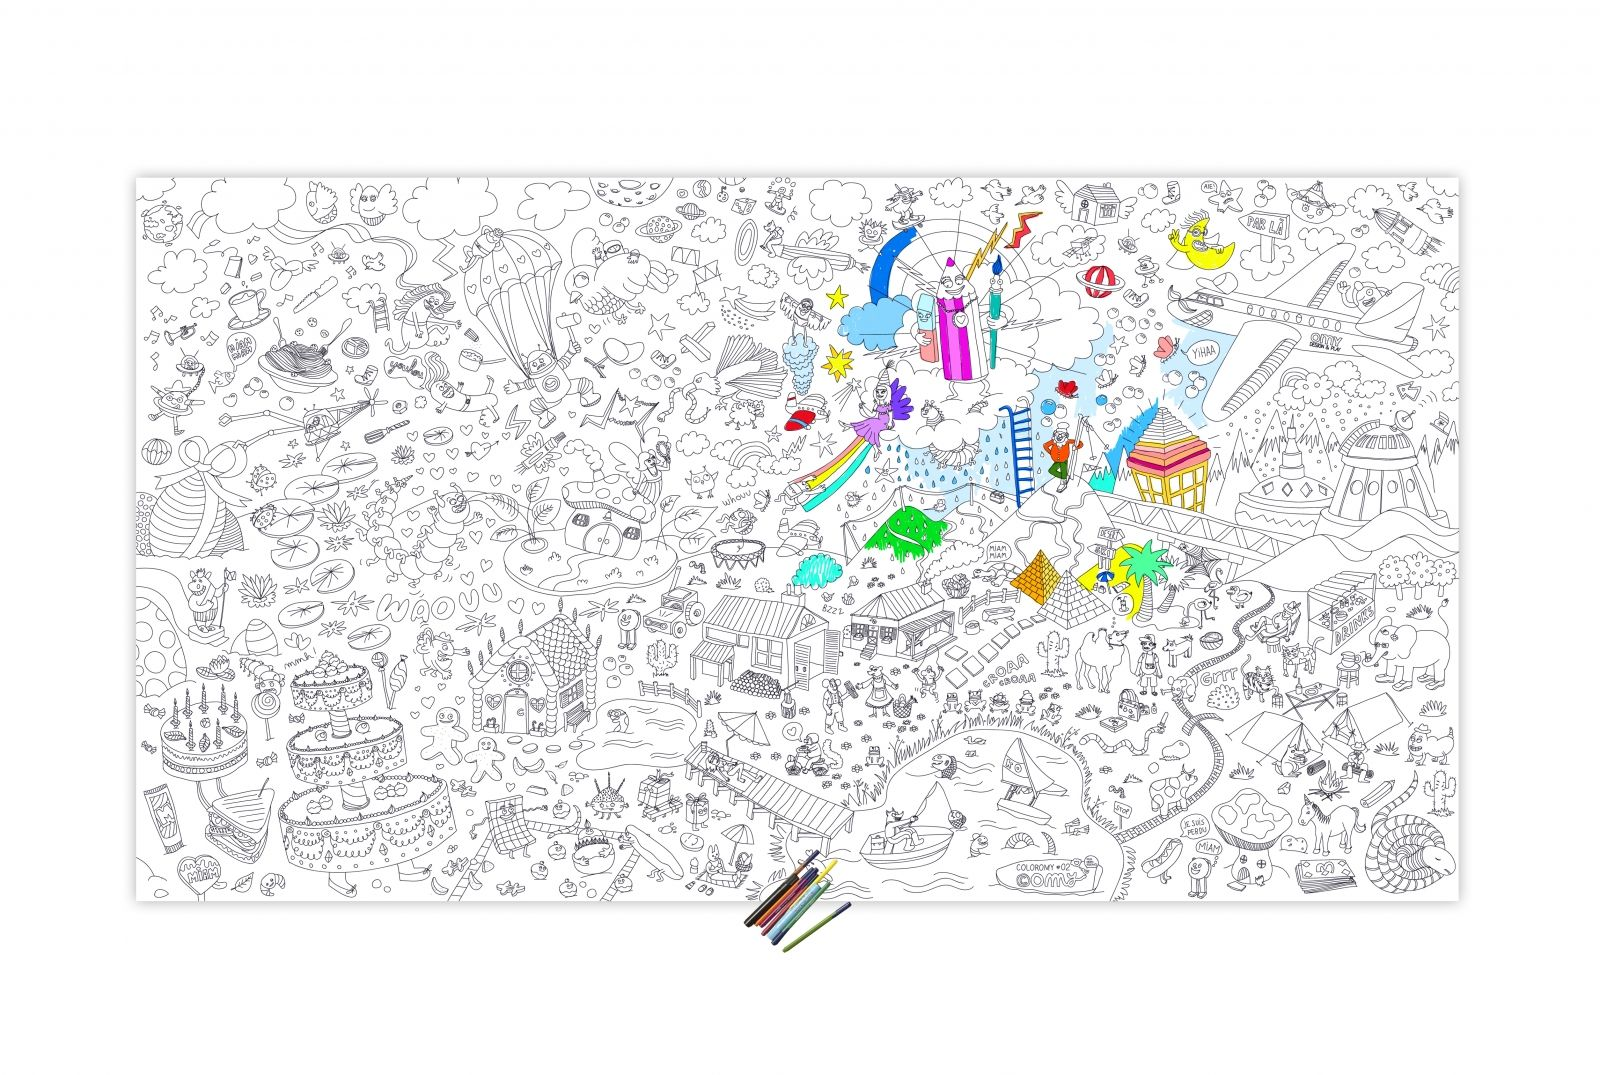 Coloriage Geant Omy Rouleau Papier Poster Acheter Vente Coloriage Geant Coloriage Colorier